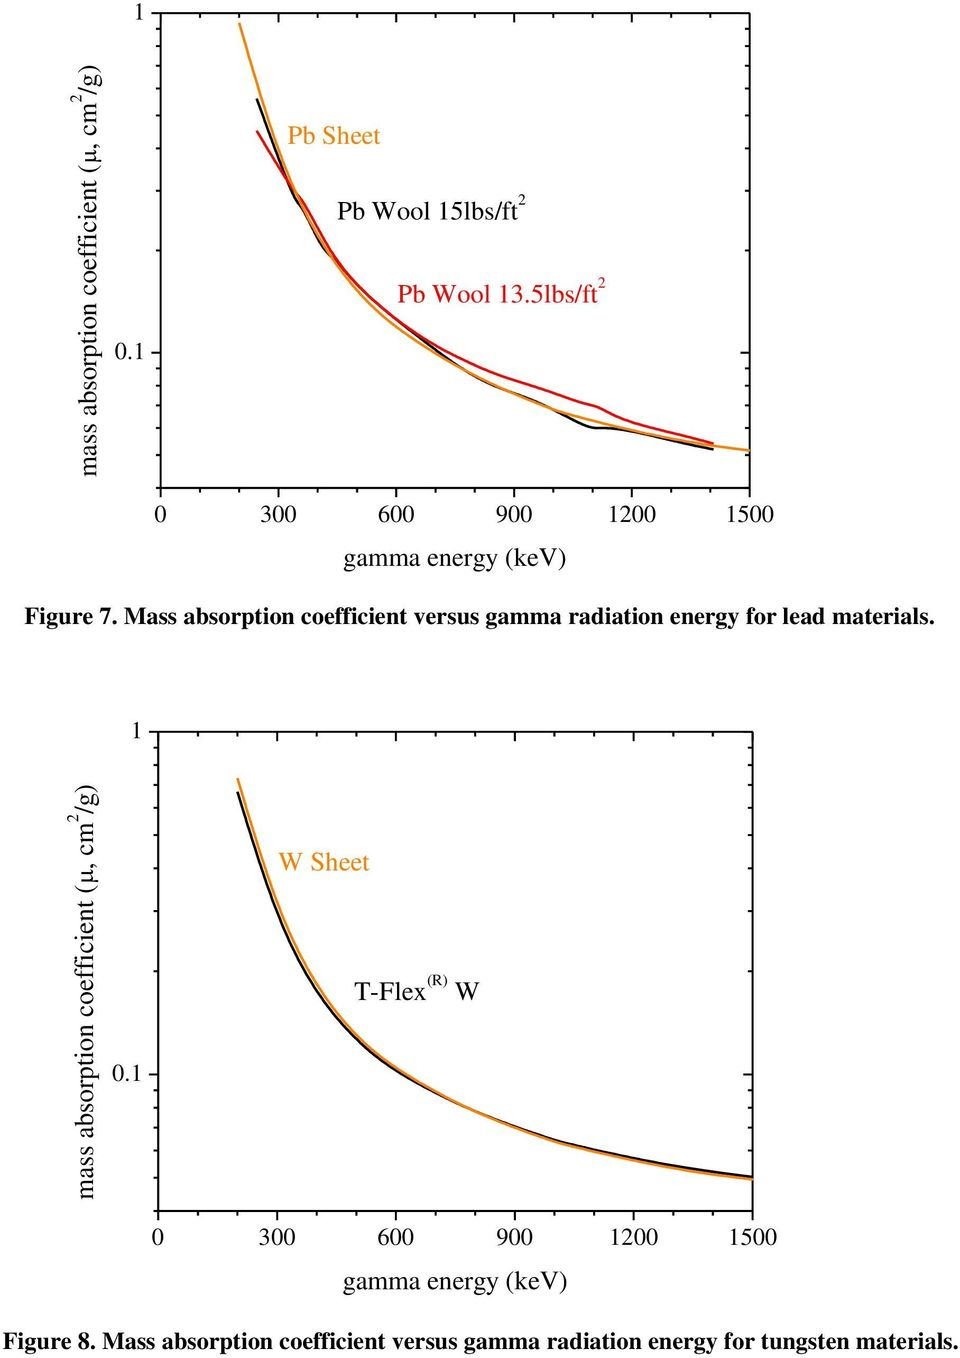 Mass absorption coefficient versus gamma radiation energy for lead materials.